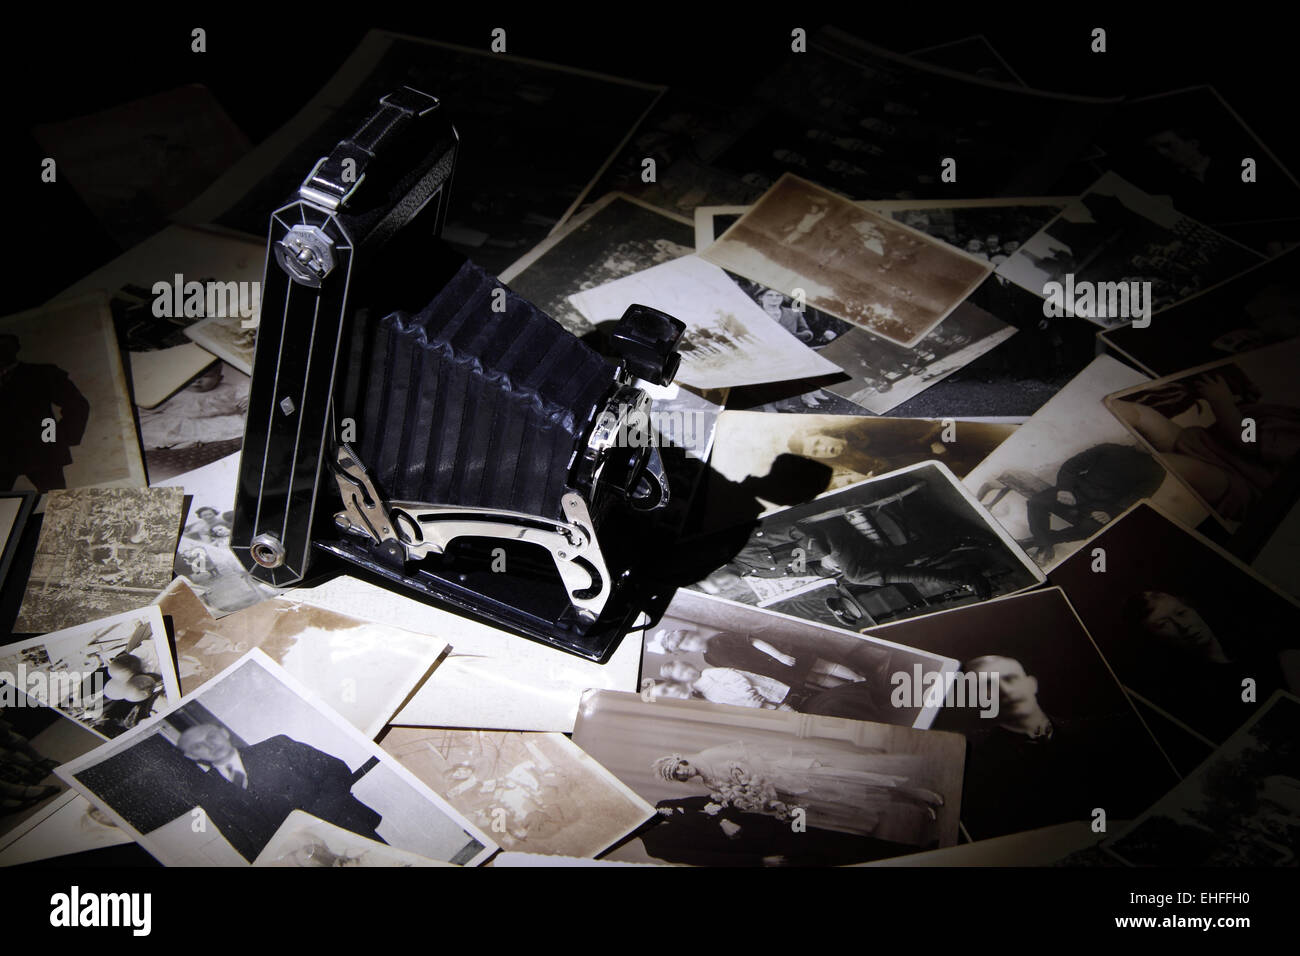 Vintage Camera on black and White images - Stock Image